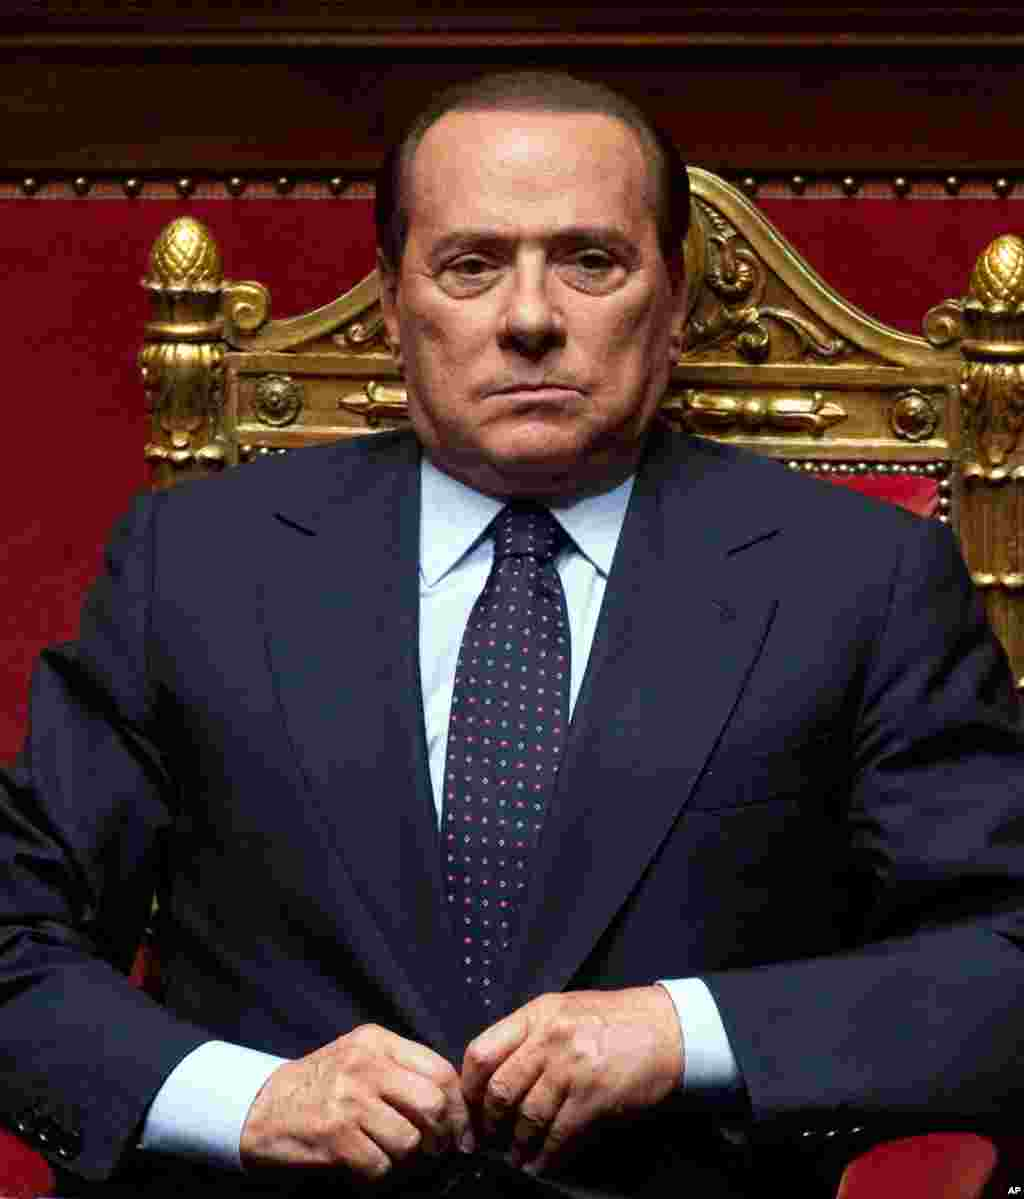 Forbes ranks Silvio Berlusconi as #21 on the list of world's most powerful people, and #118 on the list of world's richest people, with an estimated net worth of $6.2 billion as of November, 2011. (AP Photo)